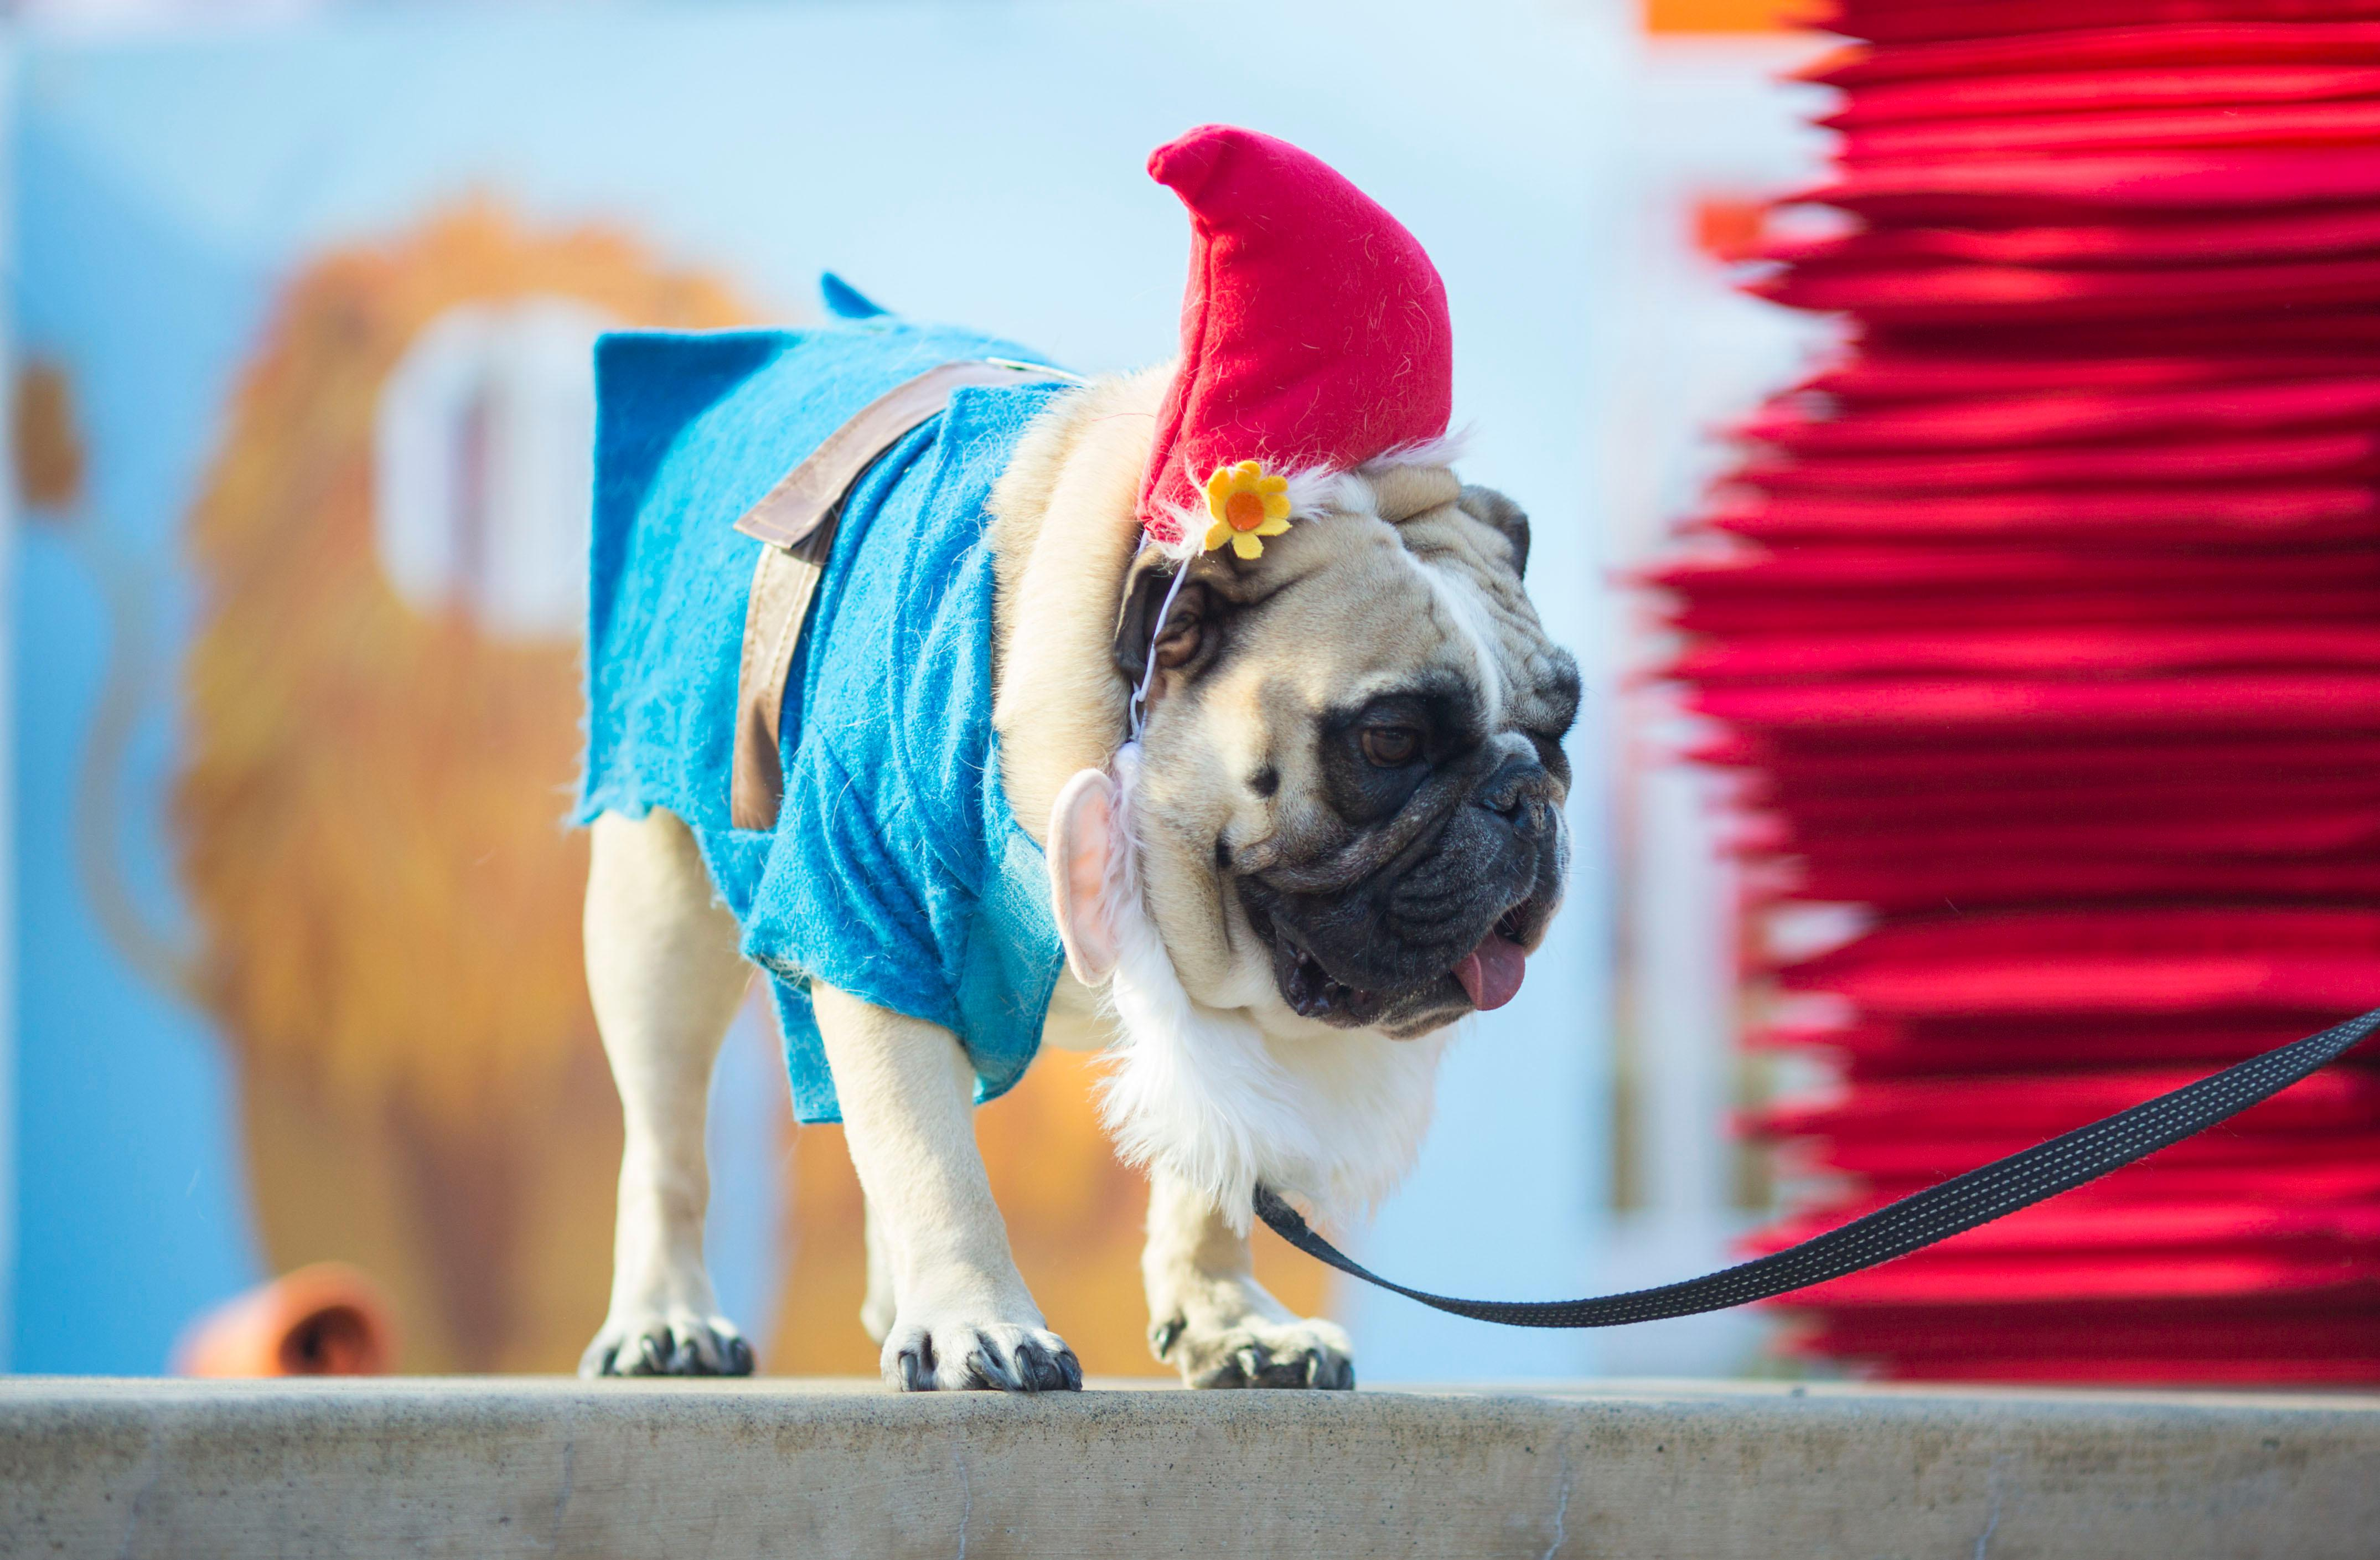 Happy Halloween!!! Amazon and Downtown Dog Lounge celebrated All Hallows' Eve with a doggy costume contest. Barktoberfest saw over 2,000 dogs and humans total, and the pug pictured on the first slide of this gallery won Best Costume, as a Fairy Godmother! (Sy Bean / Seattle Refined)